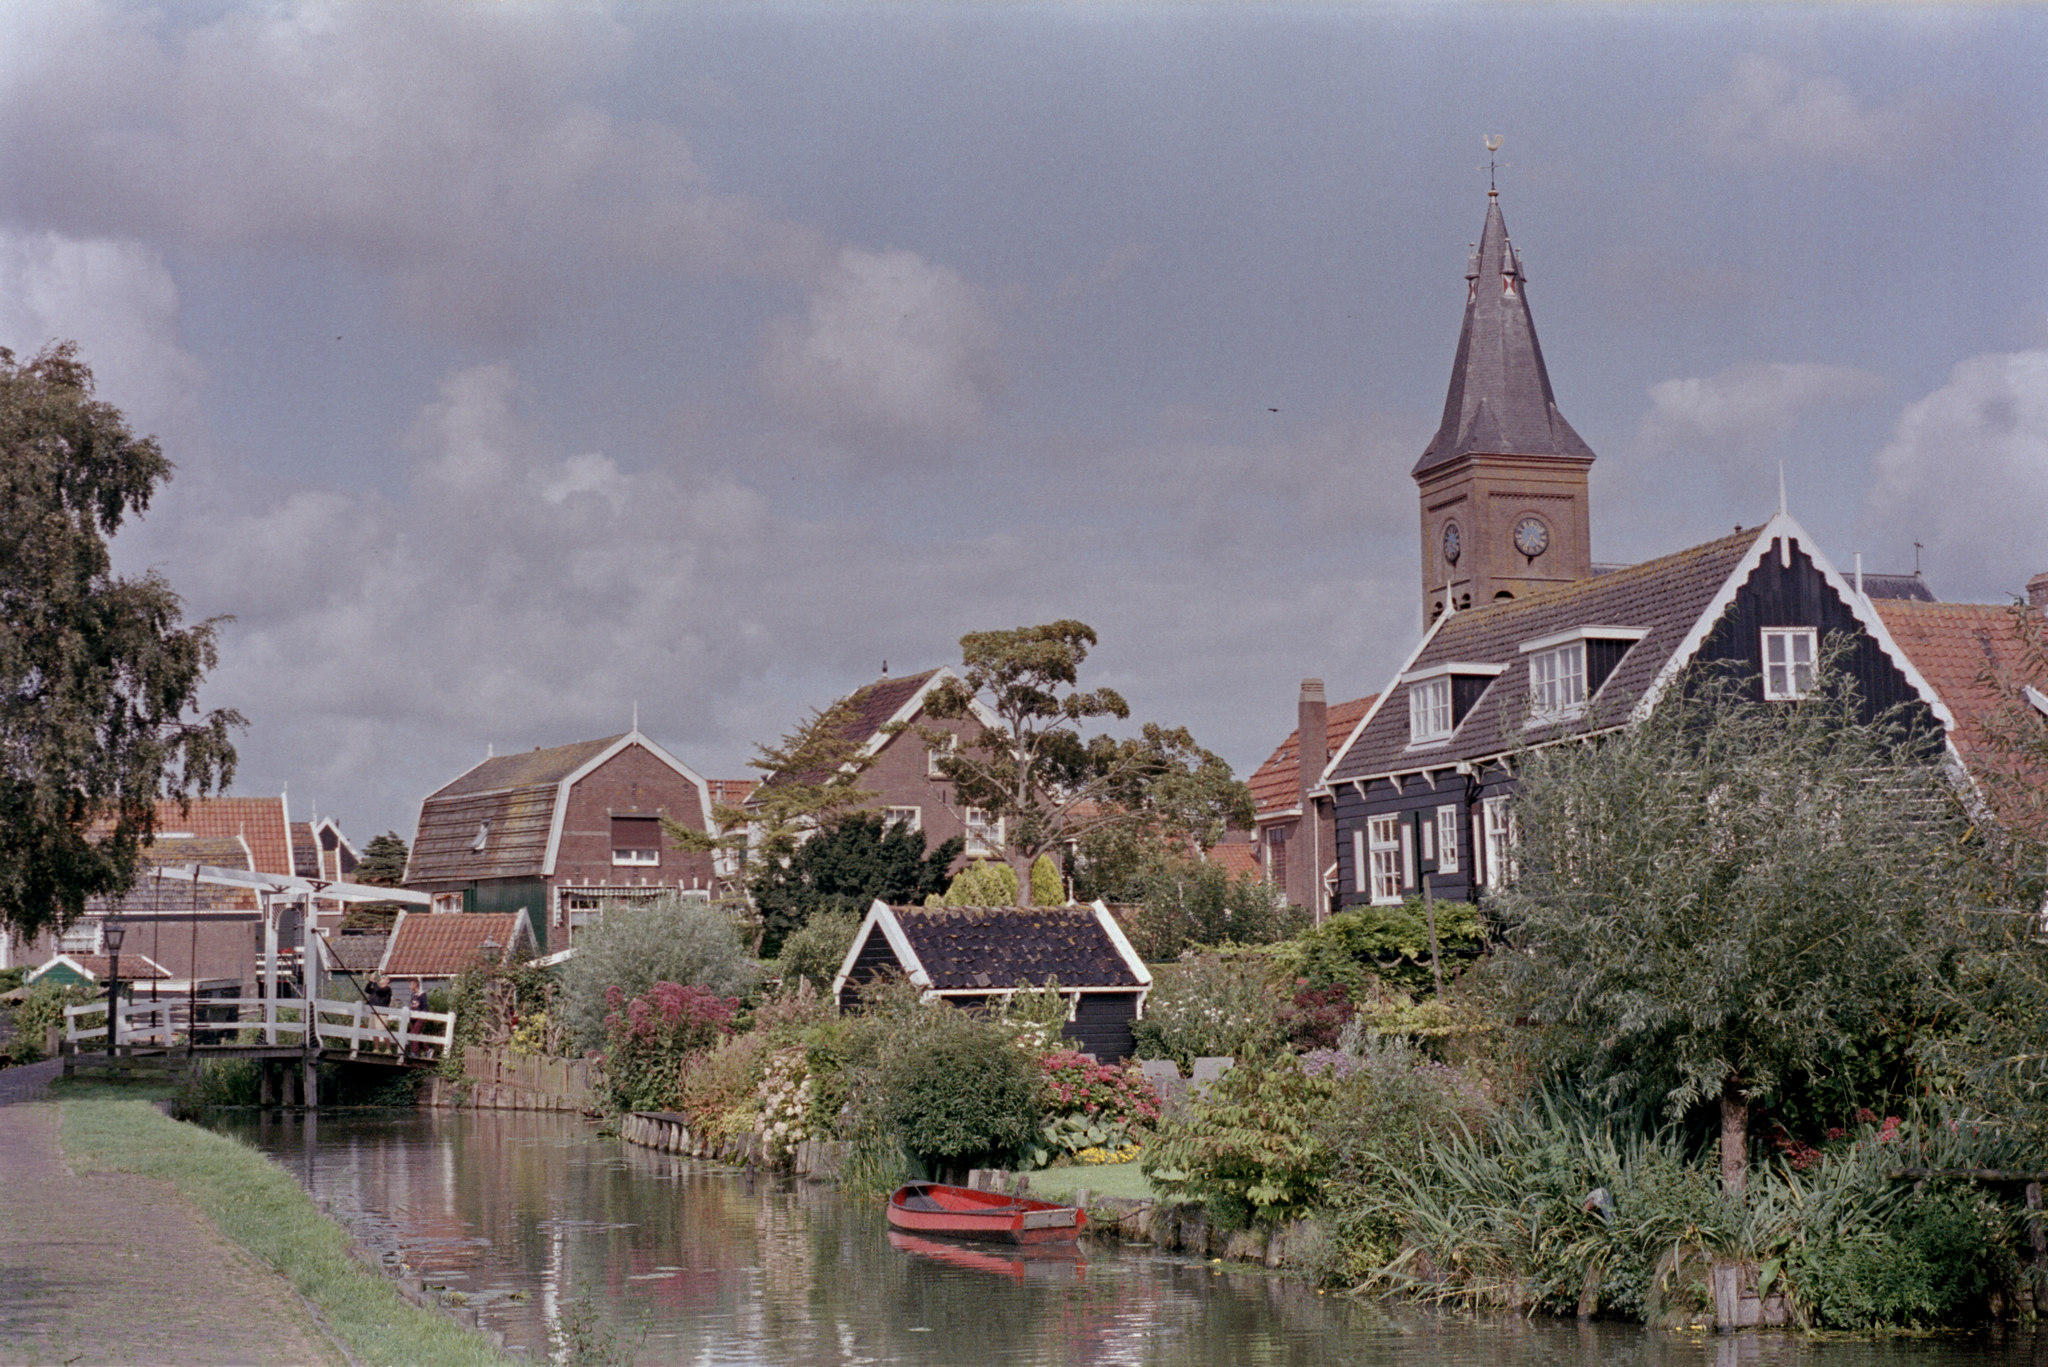 I like the Dutch. They have wrought their share of pain, but they did it early, and got out while the getting was good, and now we have largely forgotten. They mostly spent their money on the right things and now we can enjoy their beautiful houses these centuries later. Superia 400.